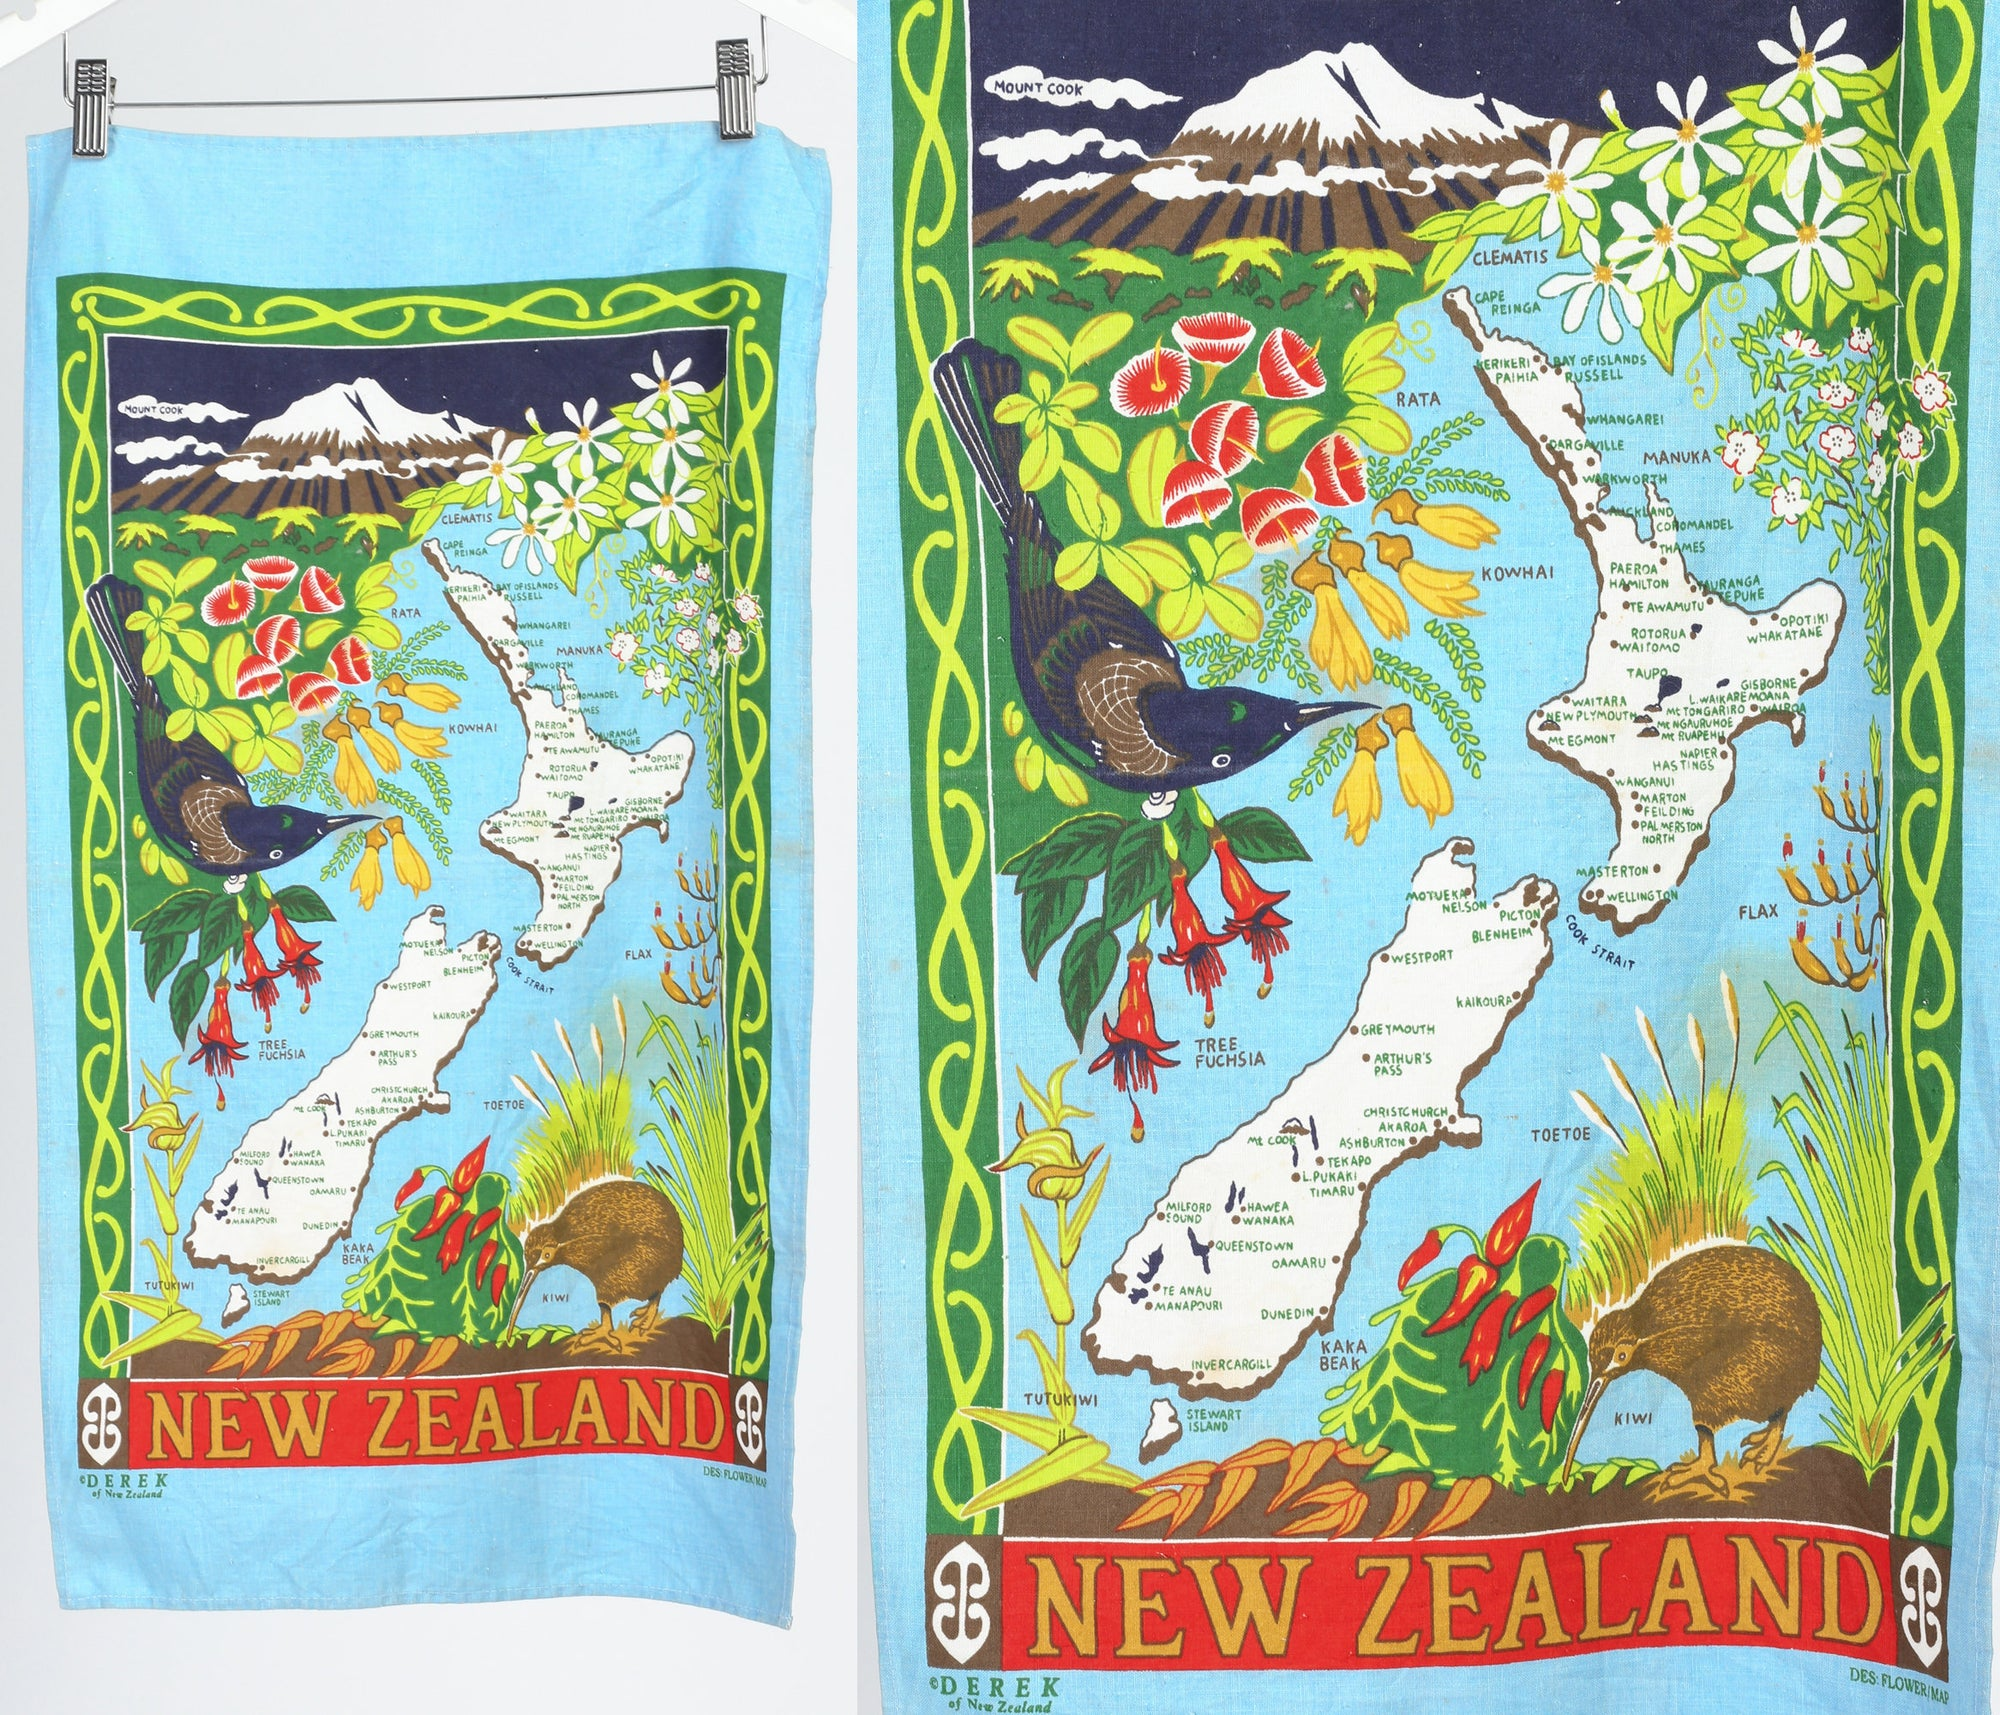 Vintage New Zealand Souvenir Linen Tea Towel